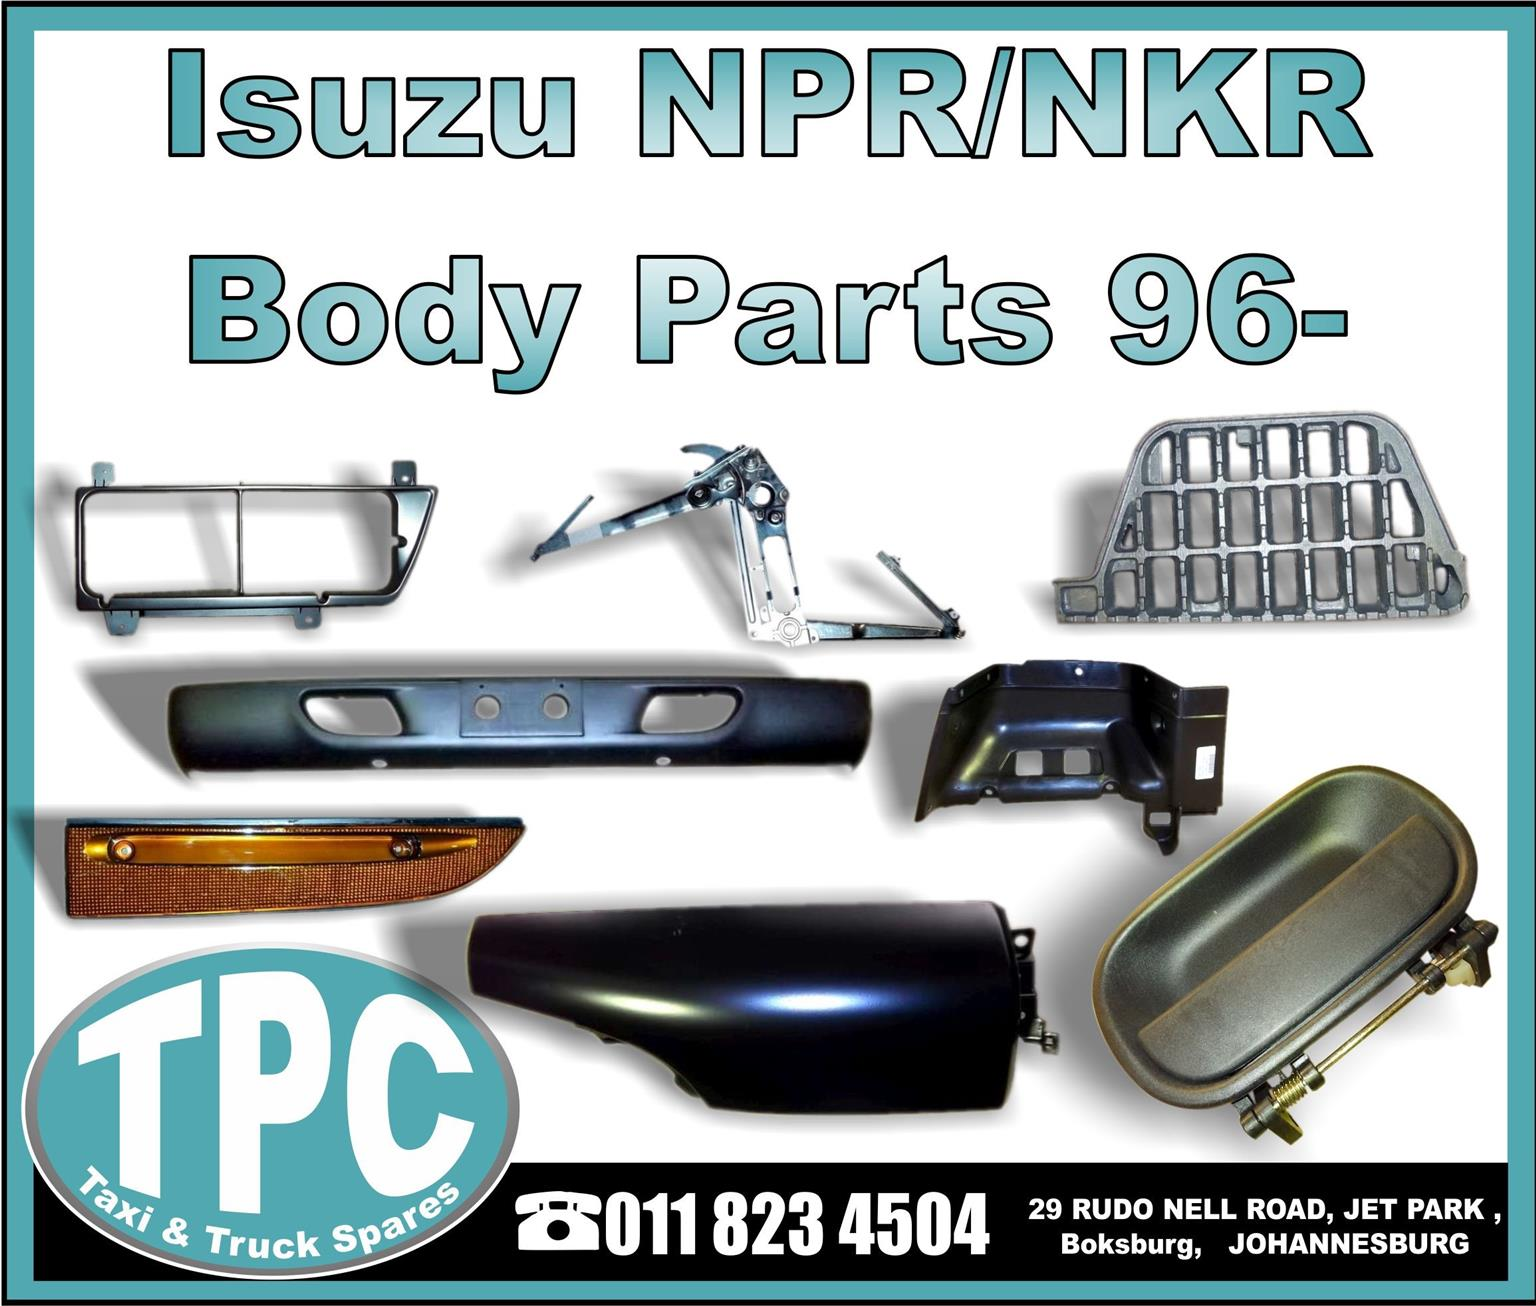 Isuzu NPR/NKR 96  Body Parts   New Replacement Parts